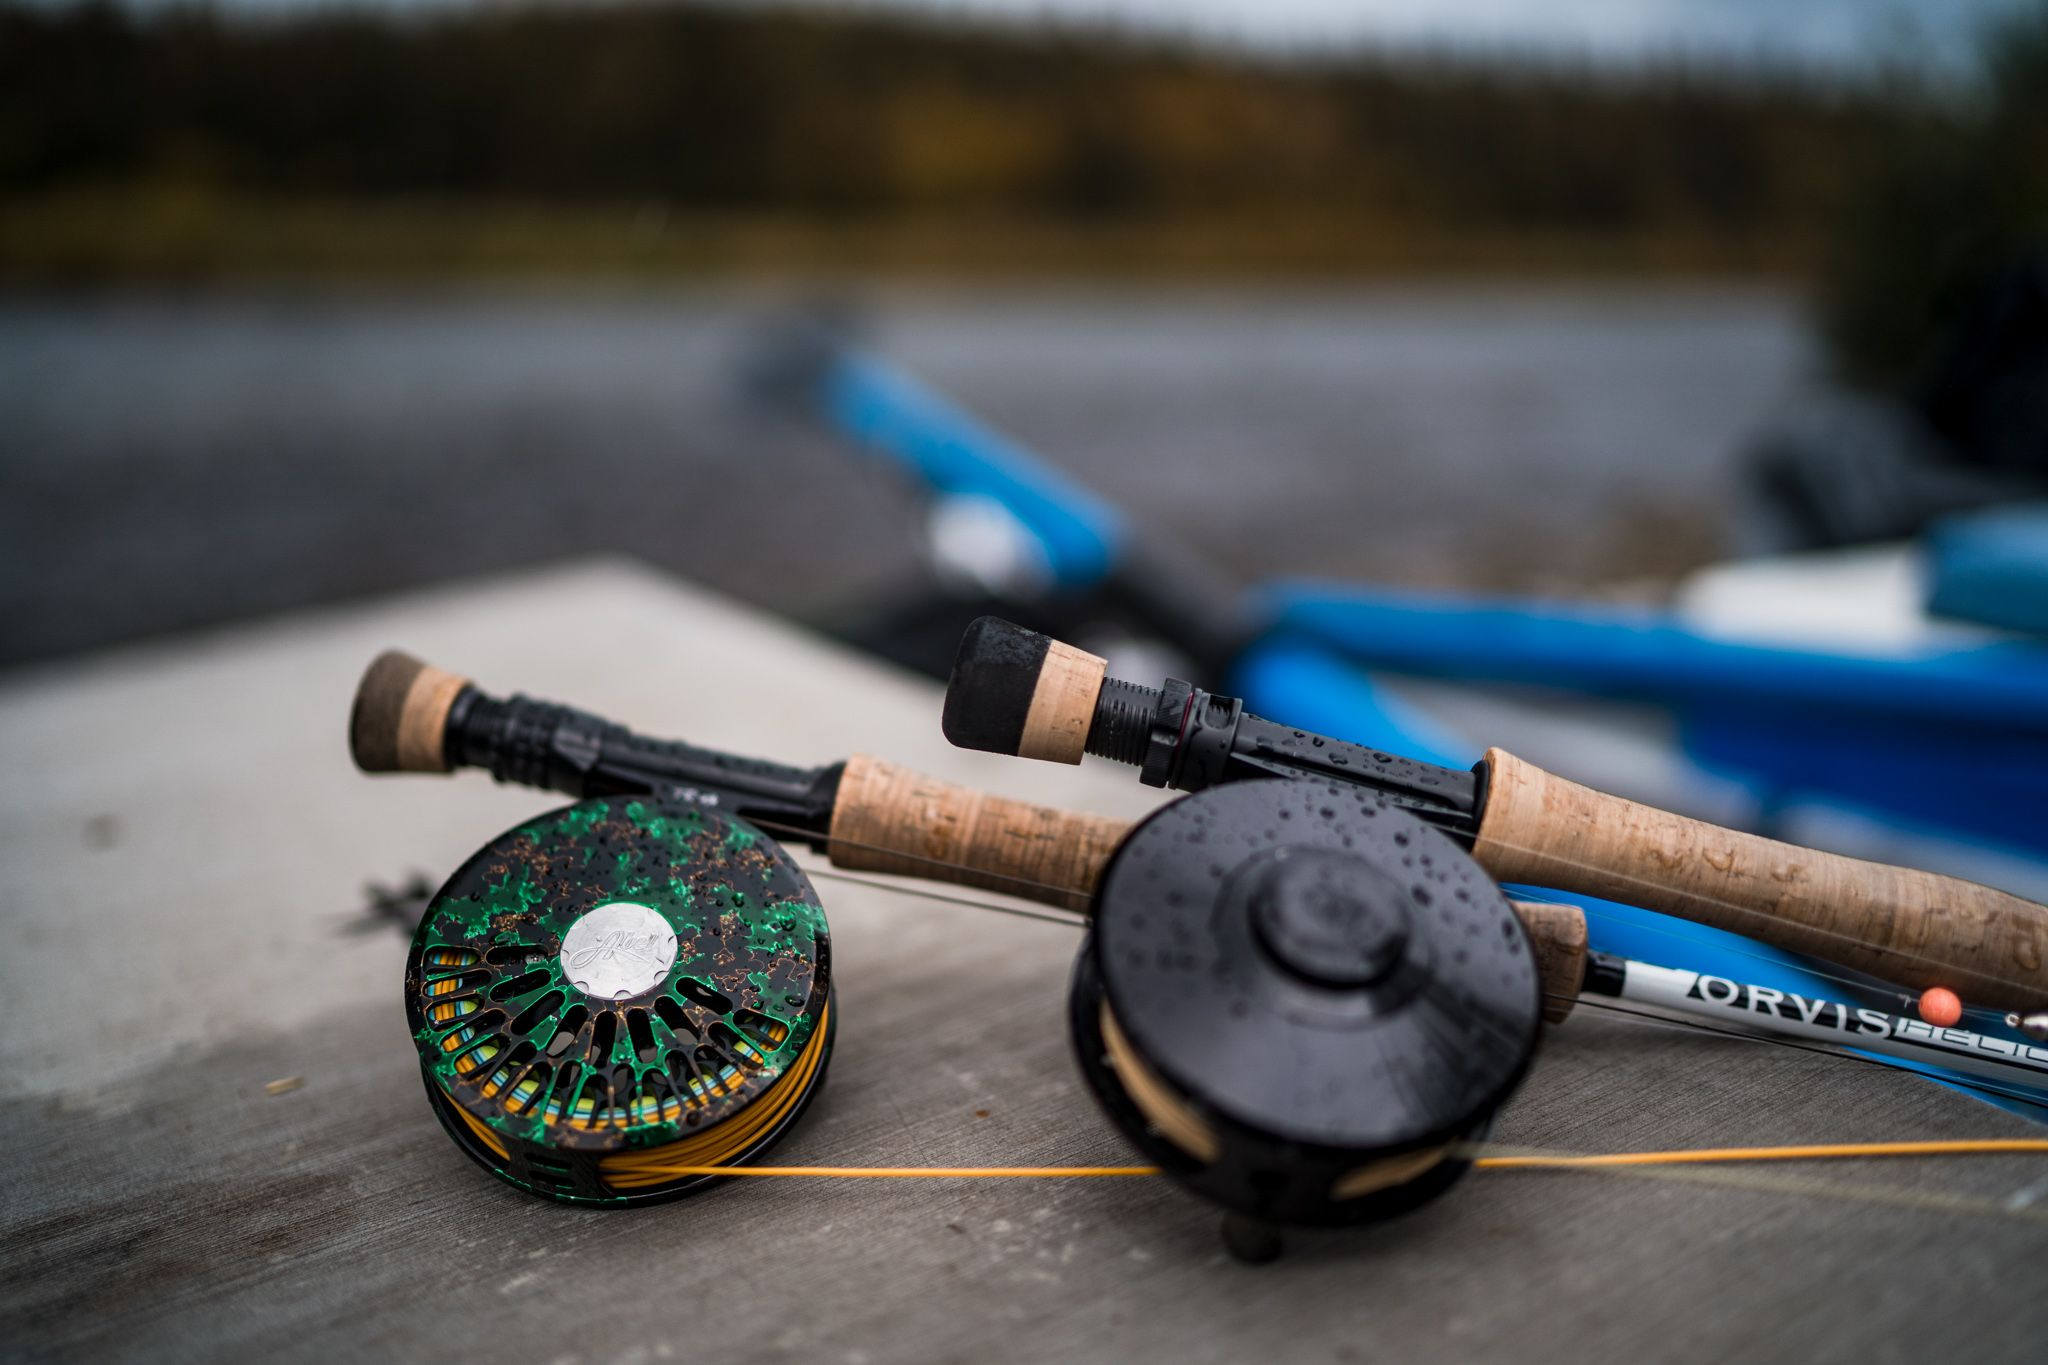 reels for fishing for trout